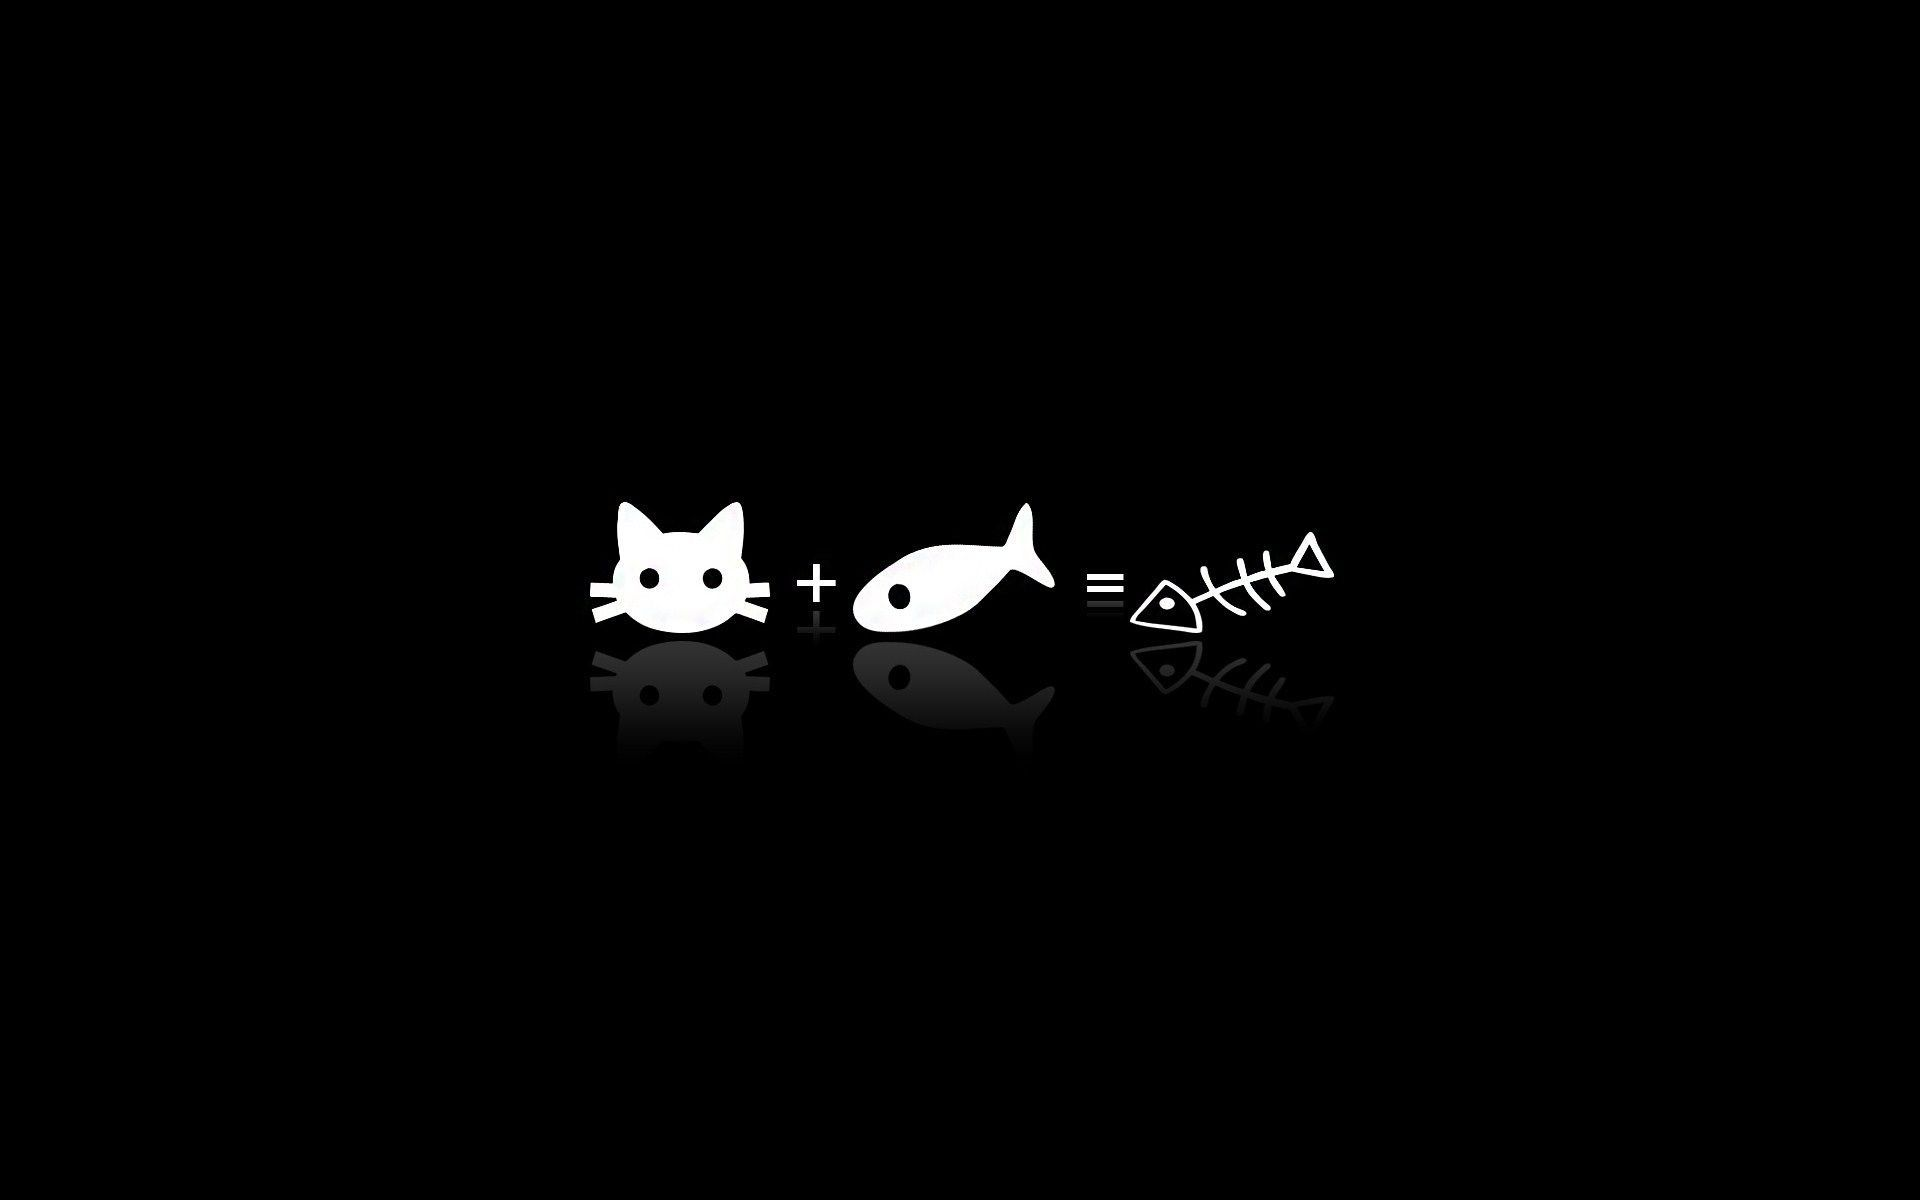 1920x1200 49+ Aesthetic Tumblr backgrounds Black ·① Download free cool HD ...